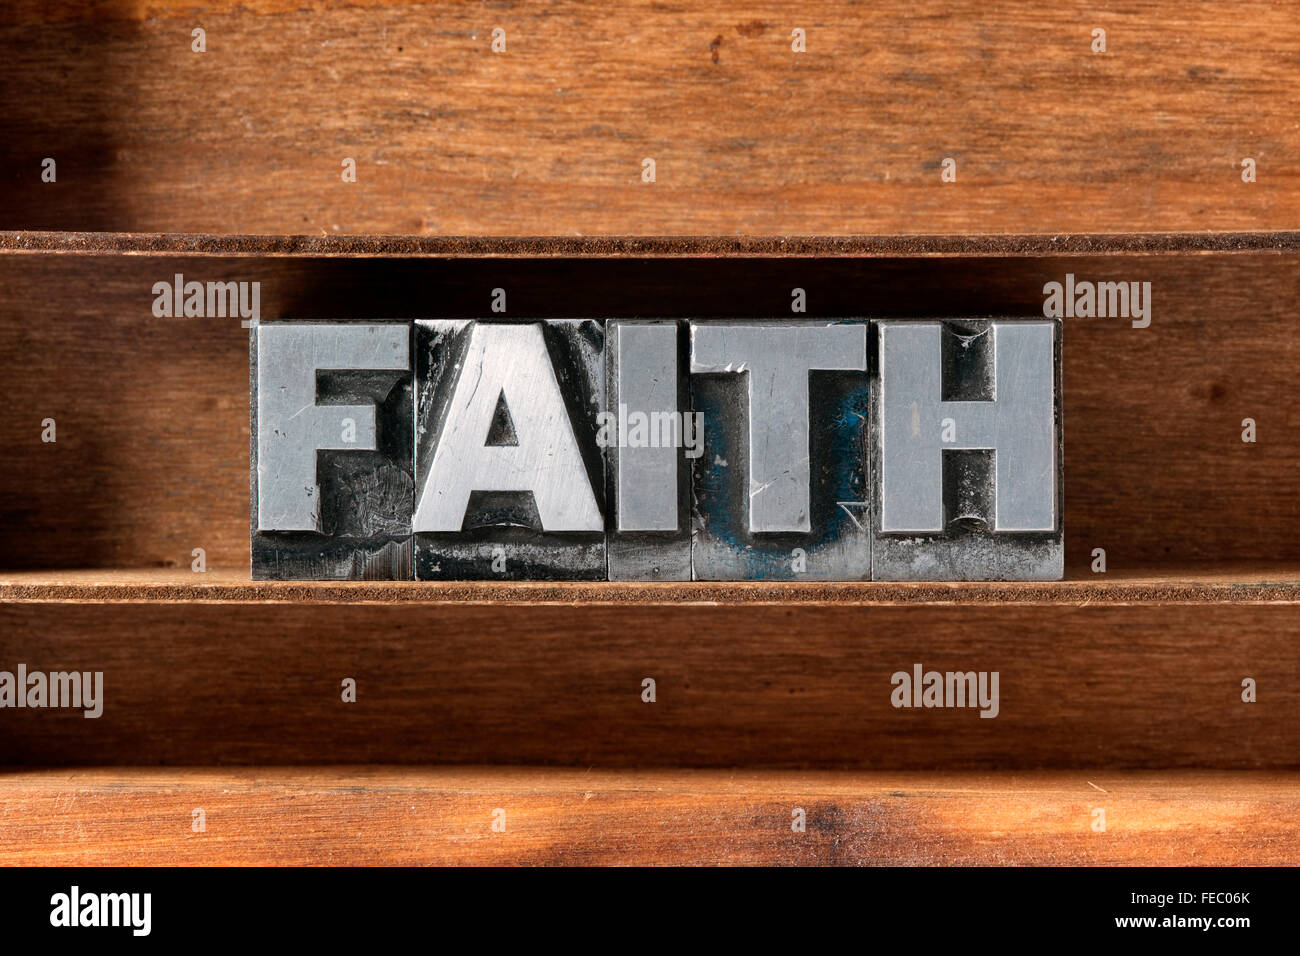 faith word made from metallic letterpress type on wooden tray - Stock Image